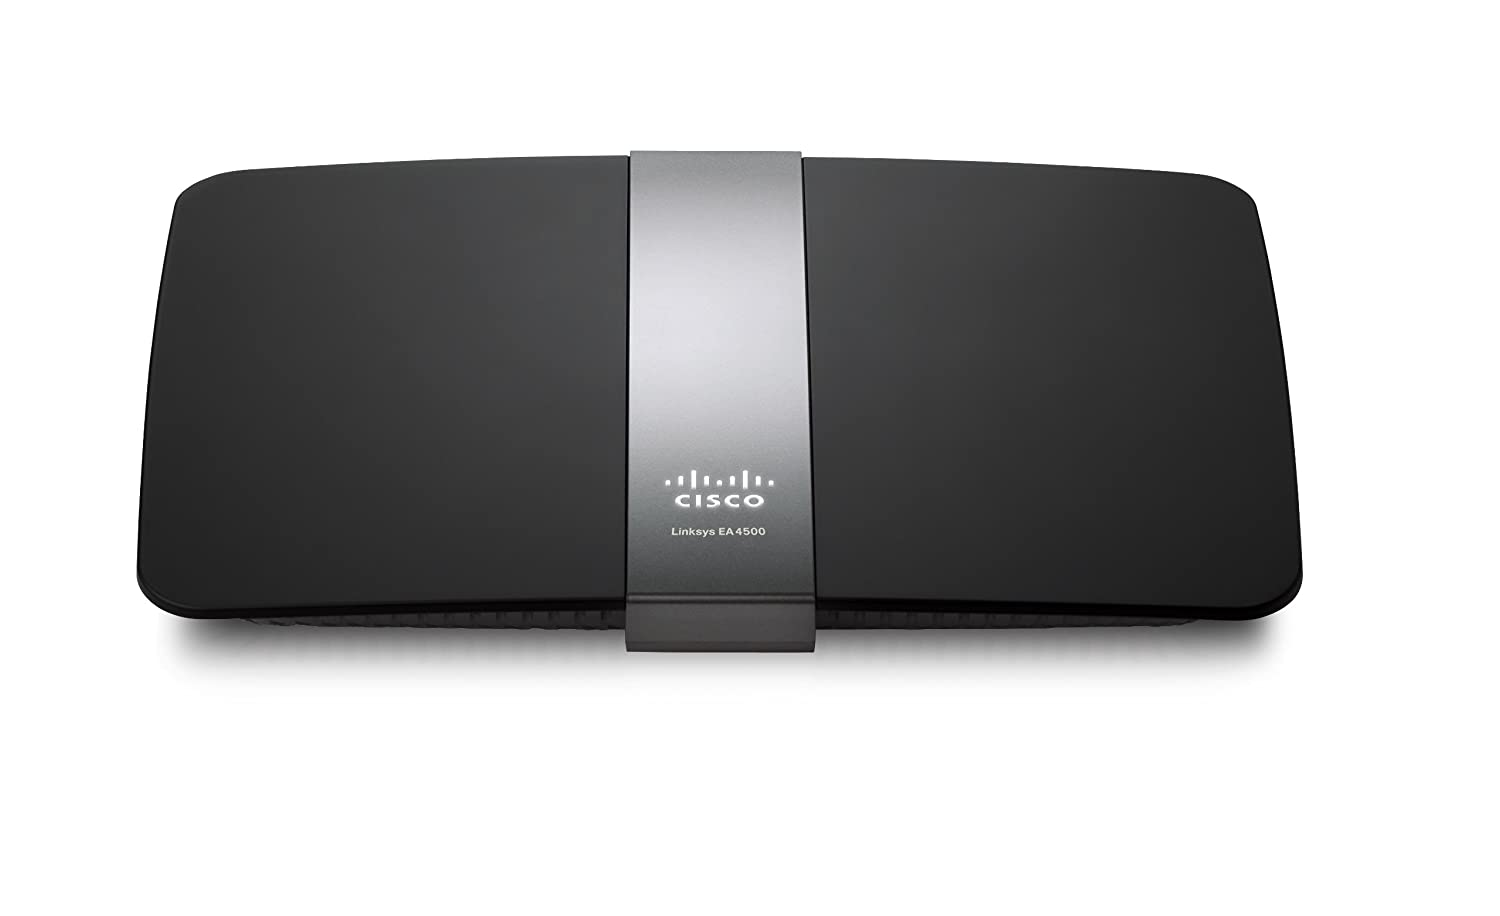 Amazon.com: Linksys N900 Wi-Fi Wireless Dual-Band+ Router with ...